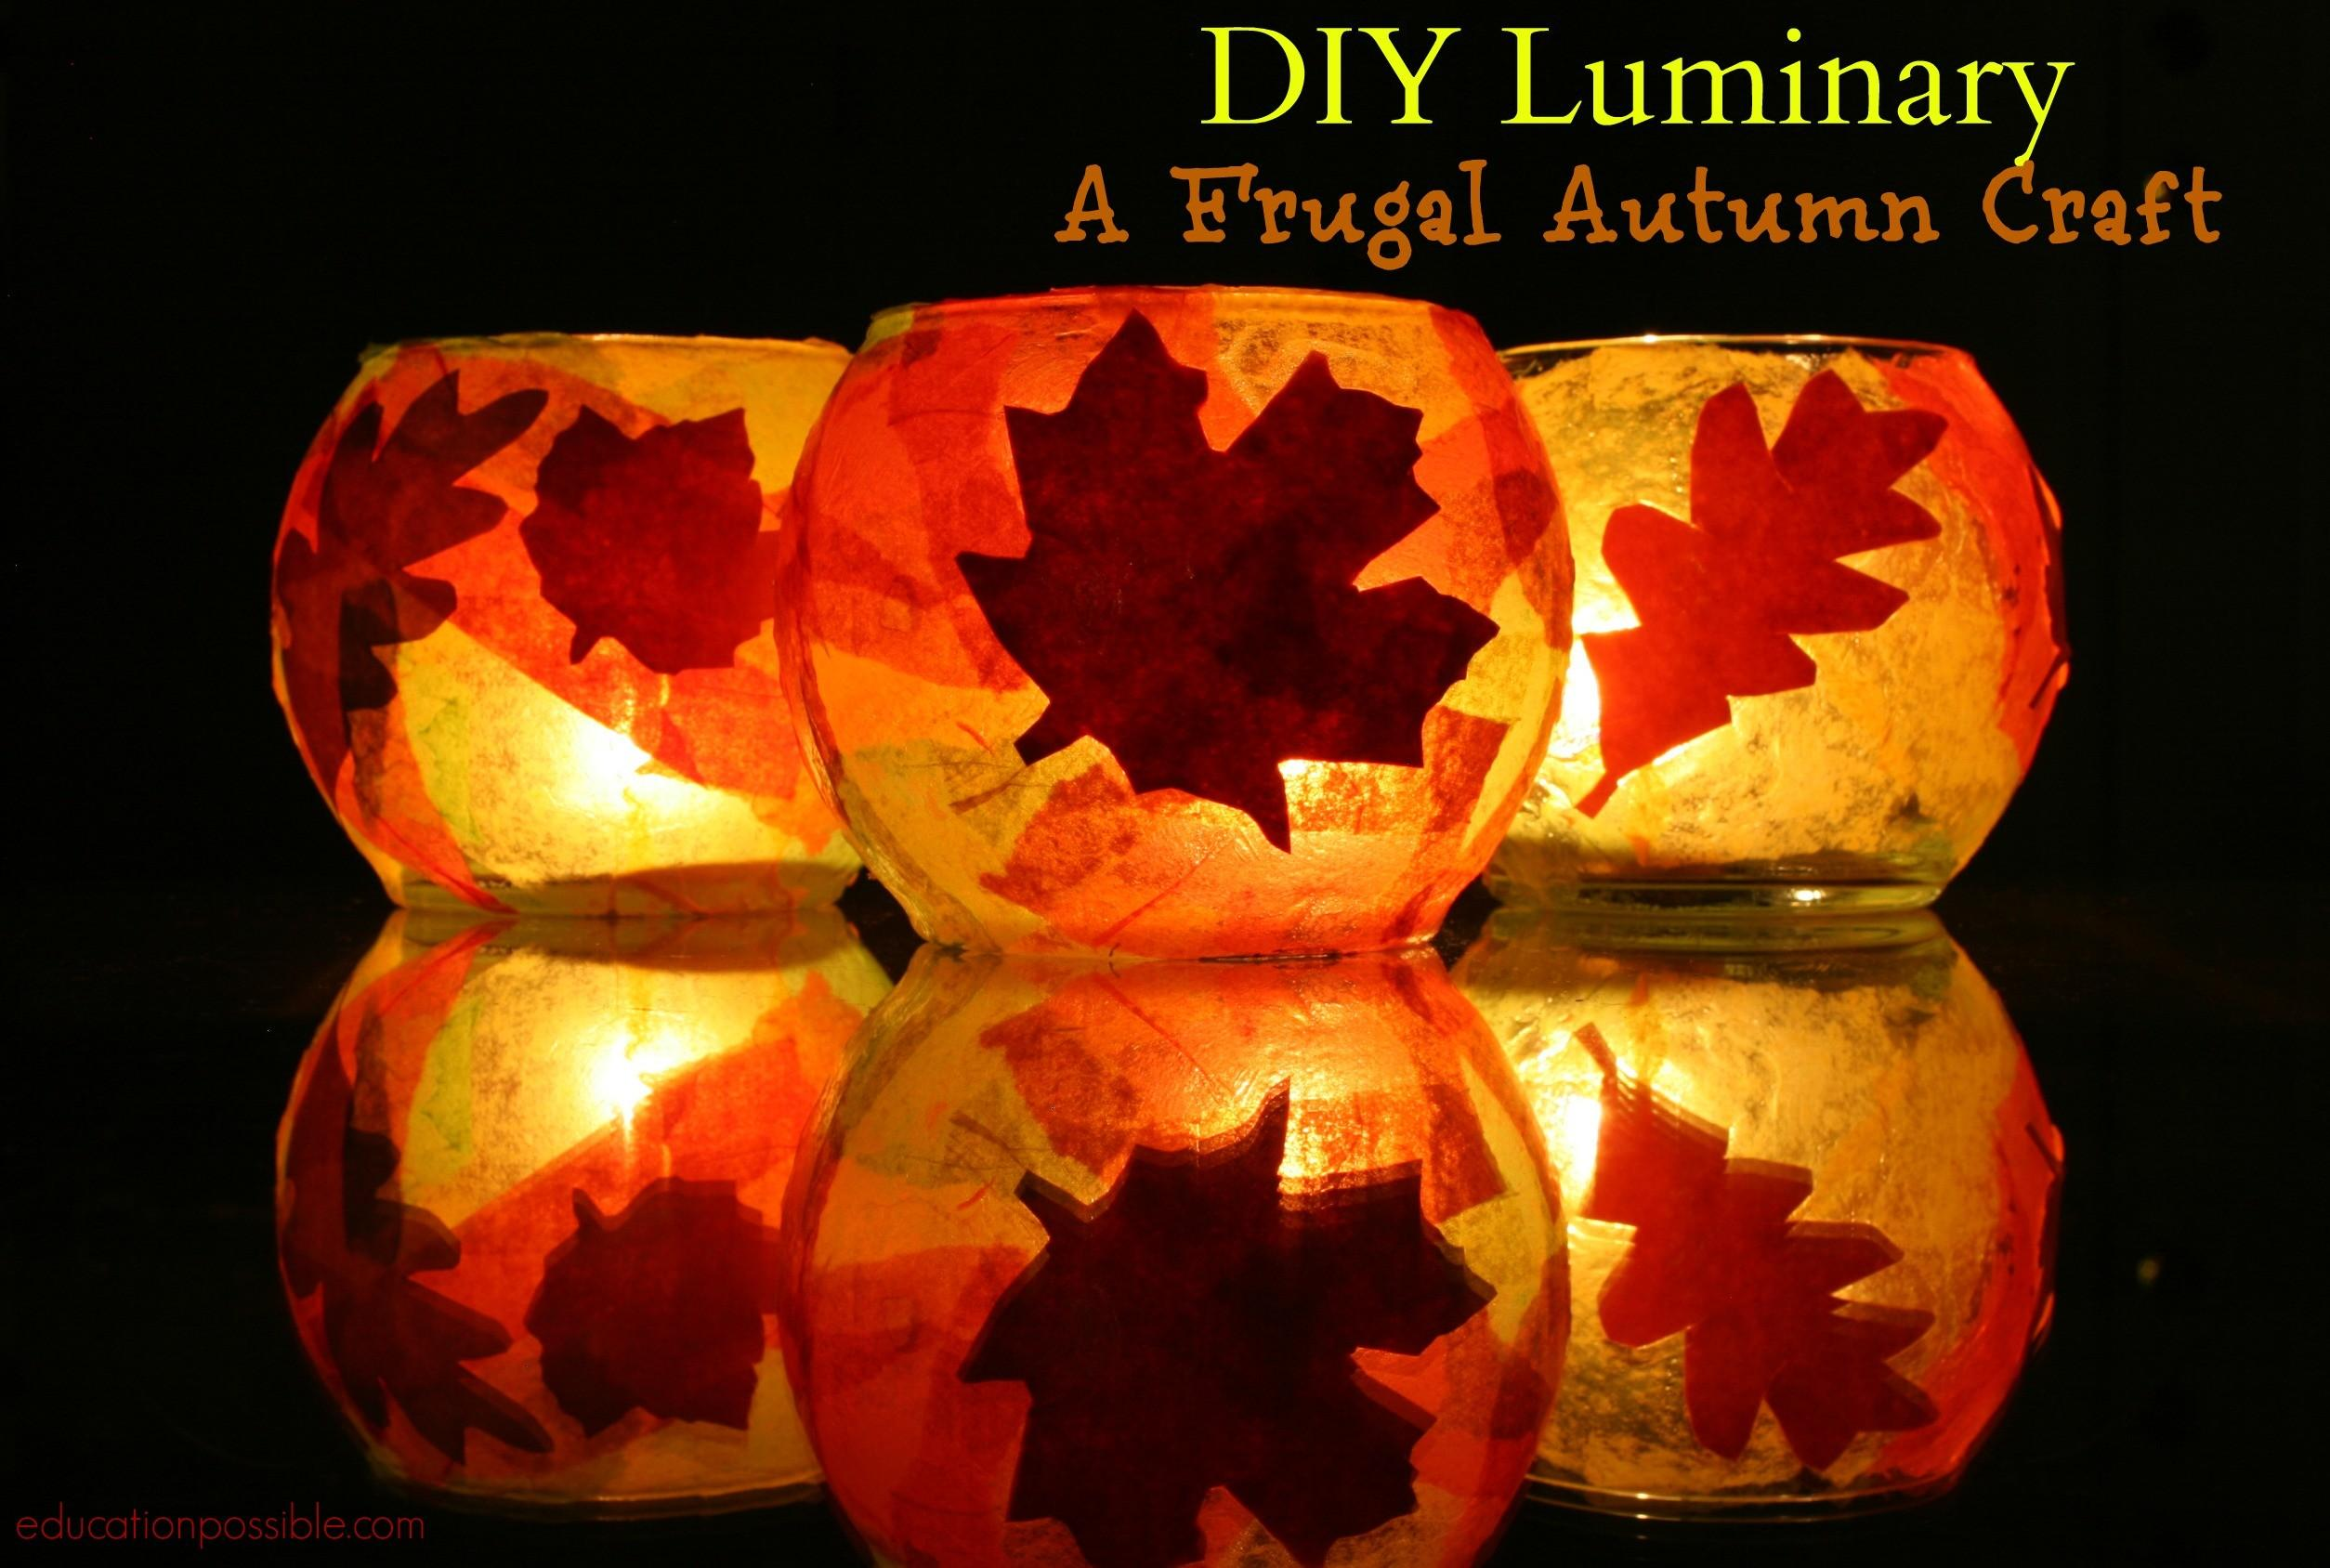 Diy Luminary Frugal Autumn Craft